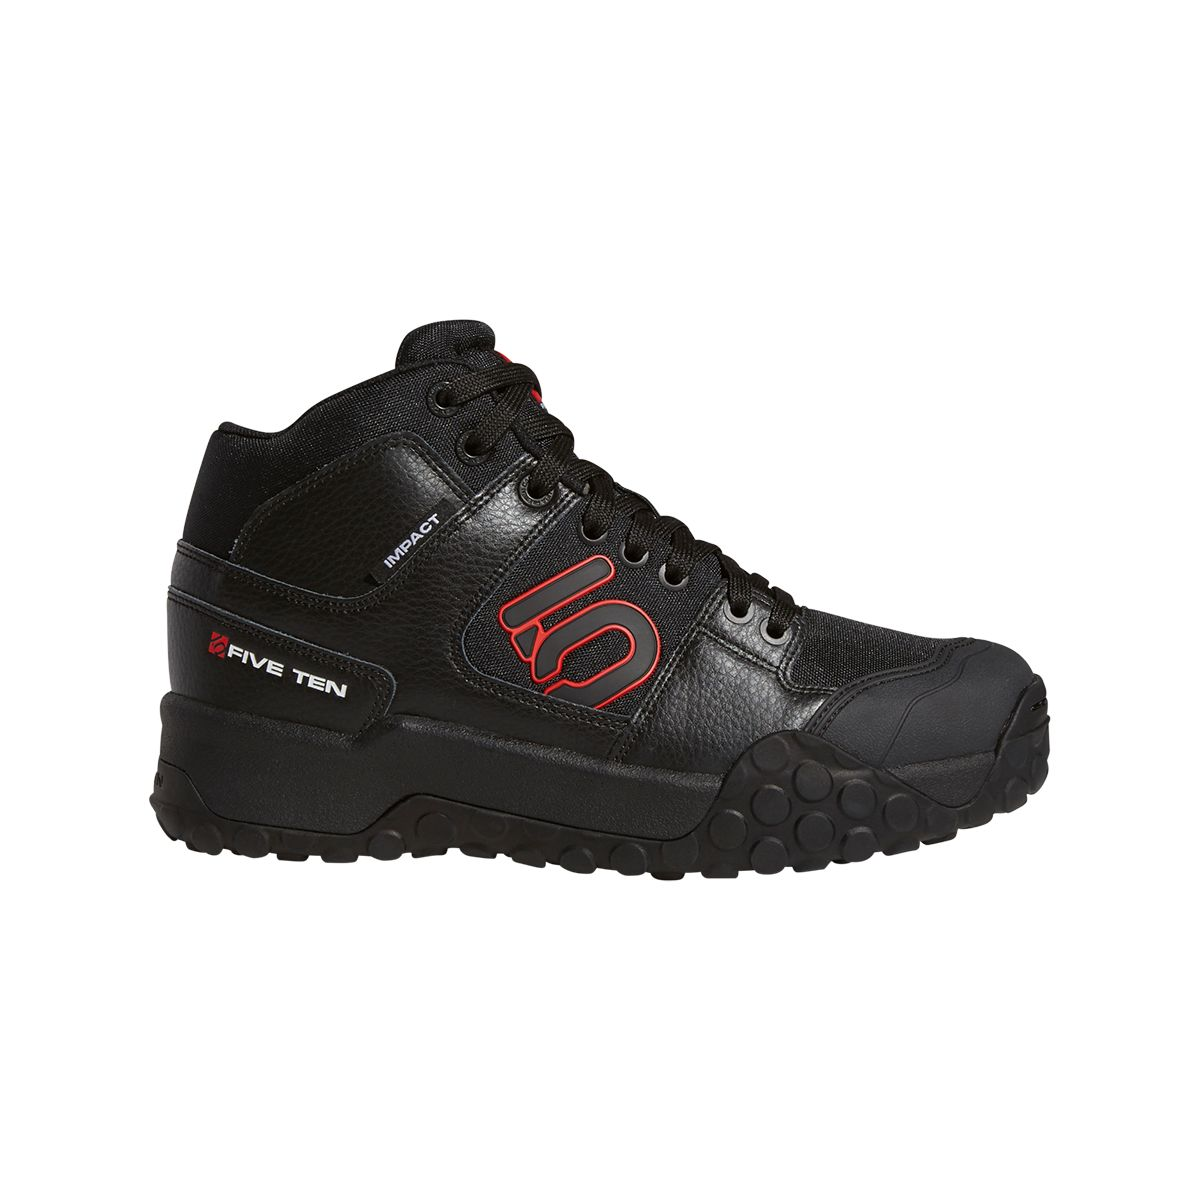 FIVE TEN IMPACT HIGH Flat Pedal MTB Shoes | Shoes and overlays